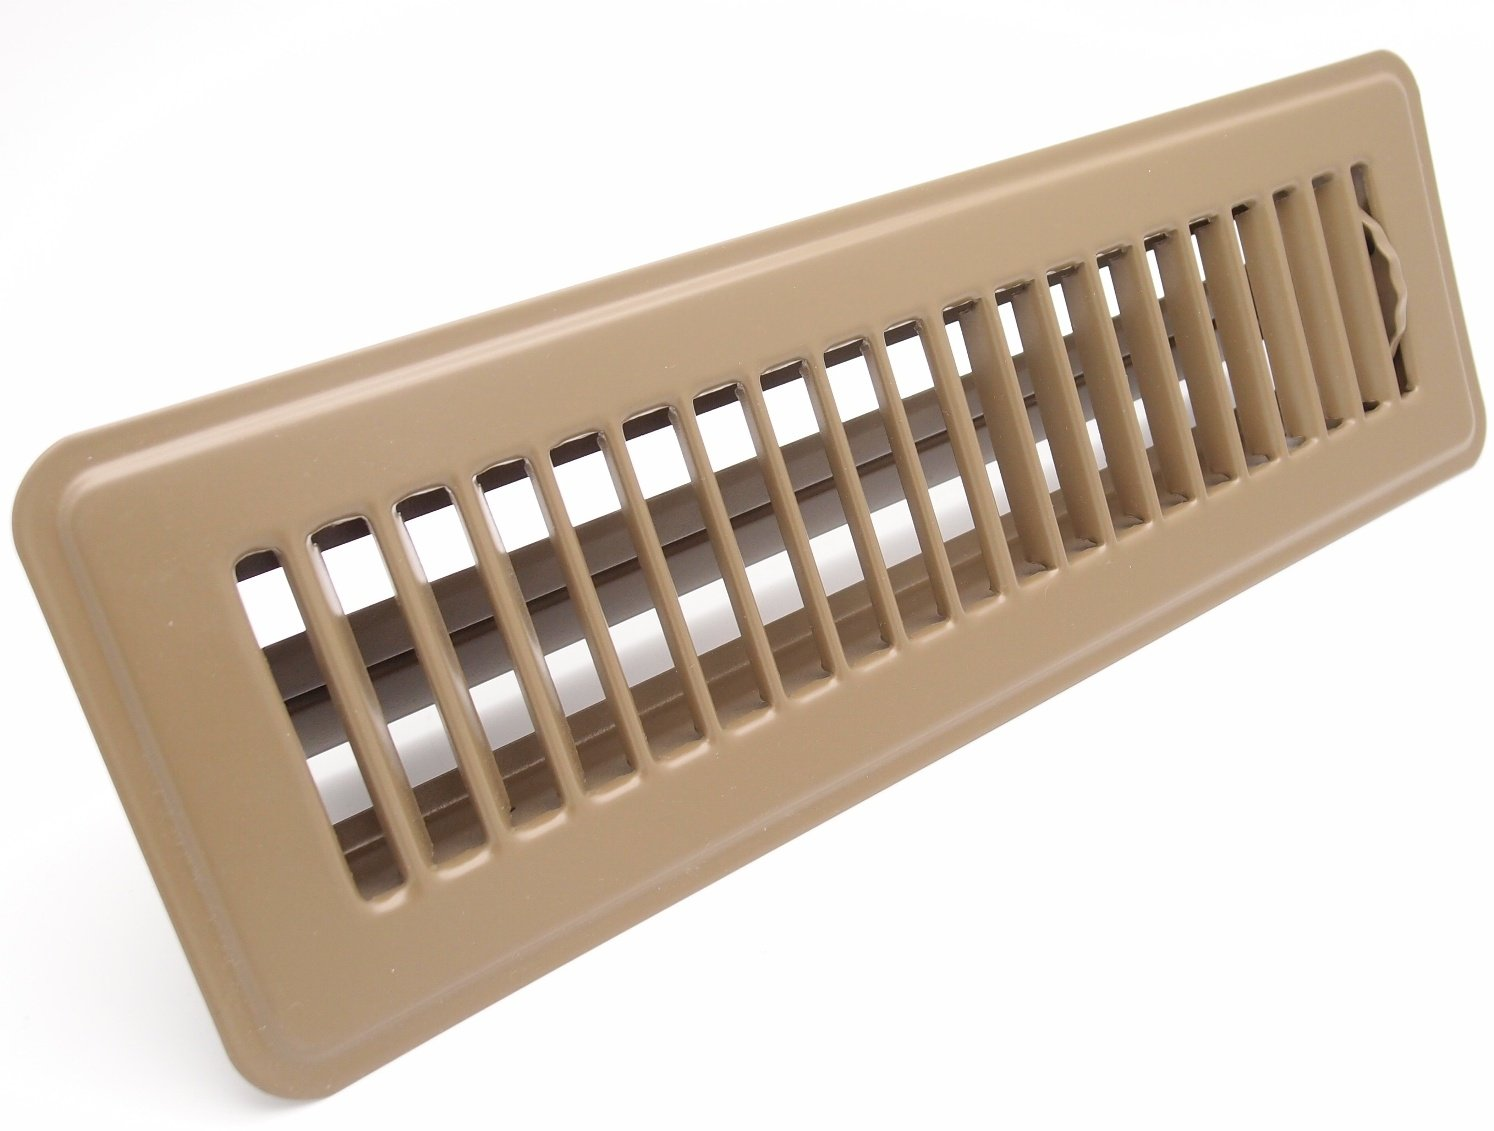 4 X 12 Floor Register with Louvered Design Brown HVAC Premium CECOMINOD047872 Heavy Duty Rigid Floor Air Supply with Damper /& Lever